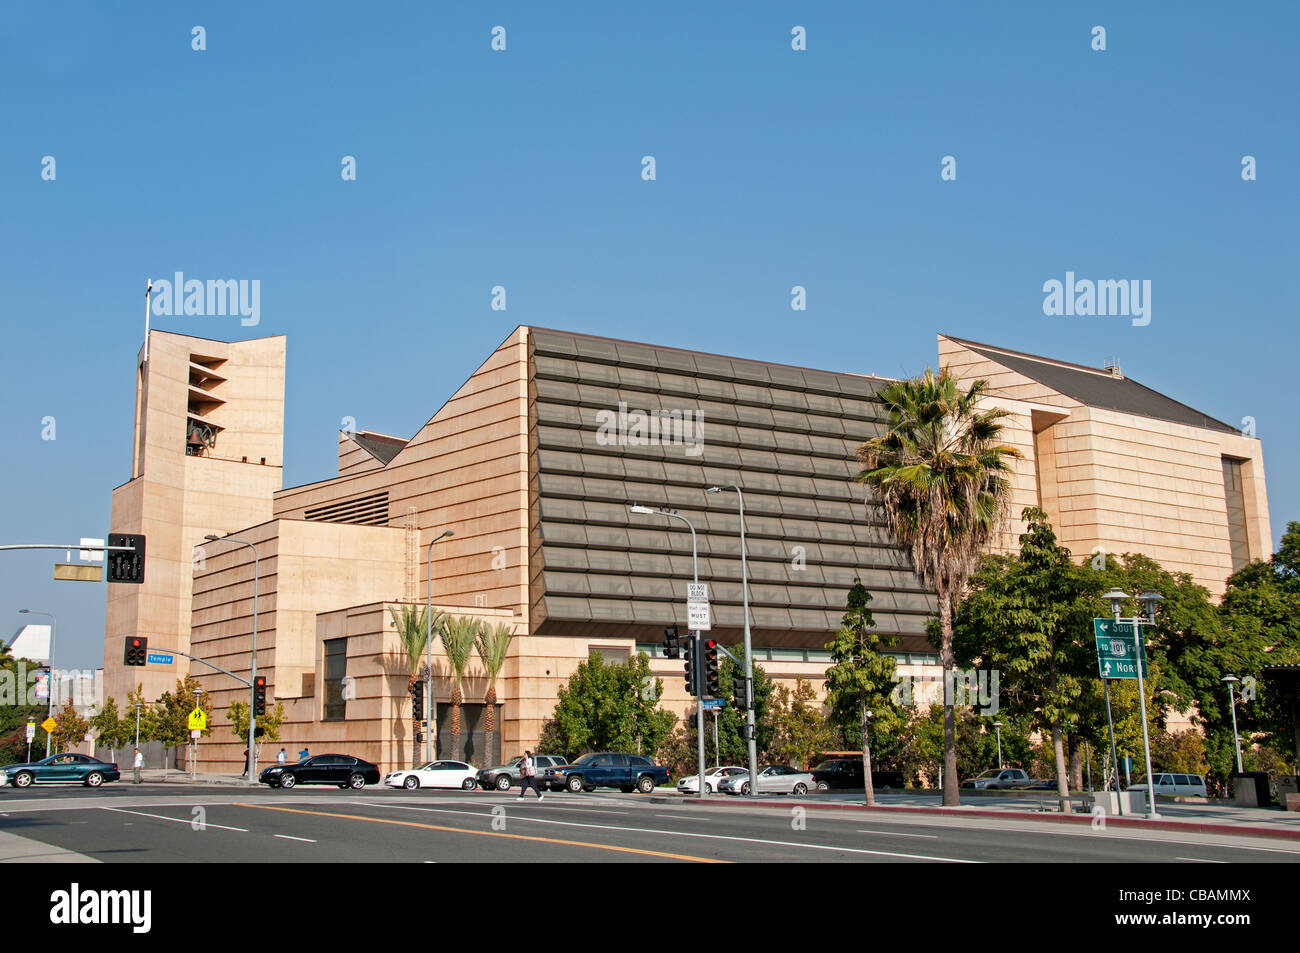 Cathedral of Our Lady of the Angles Los Angeles United States - Stock Image